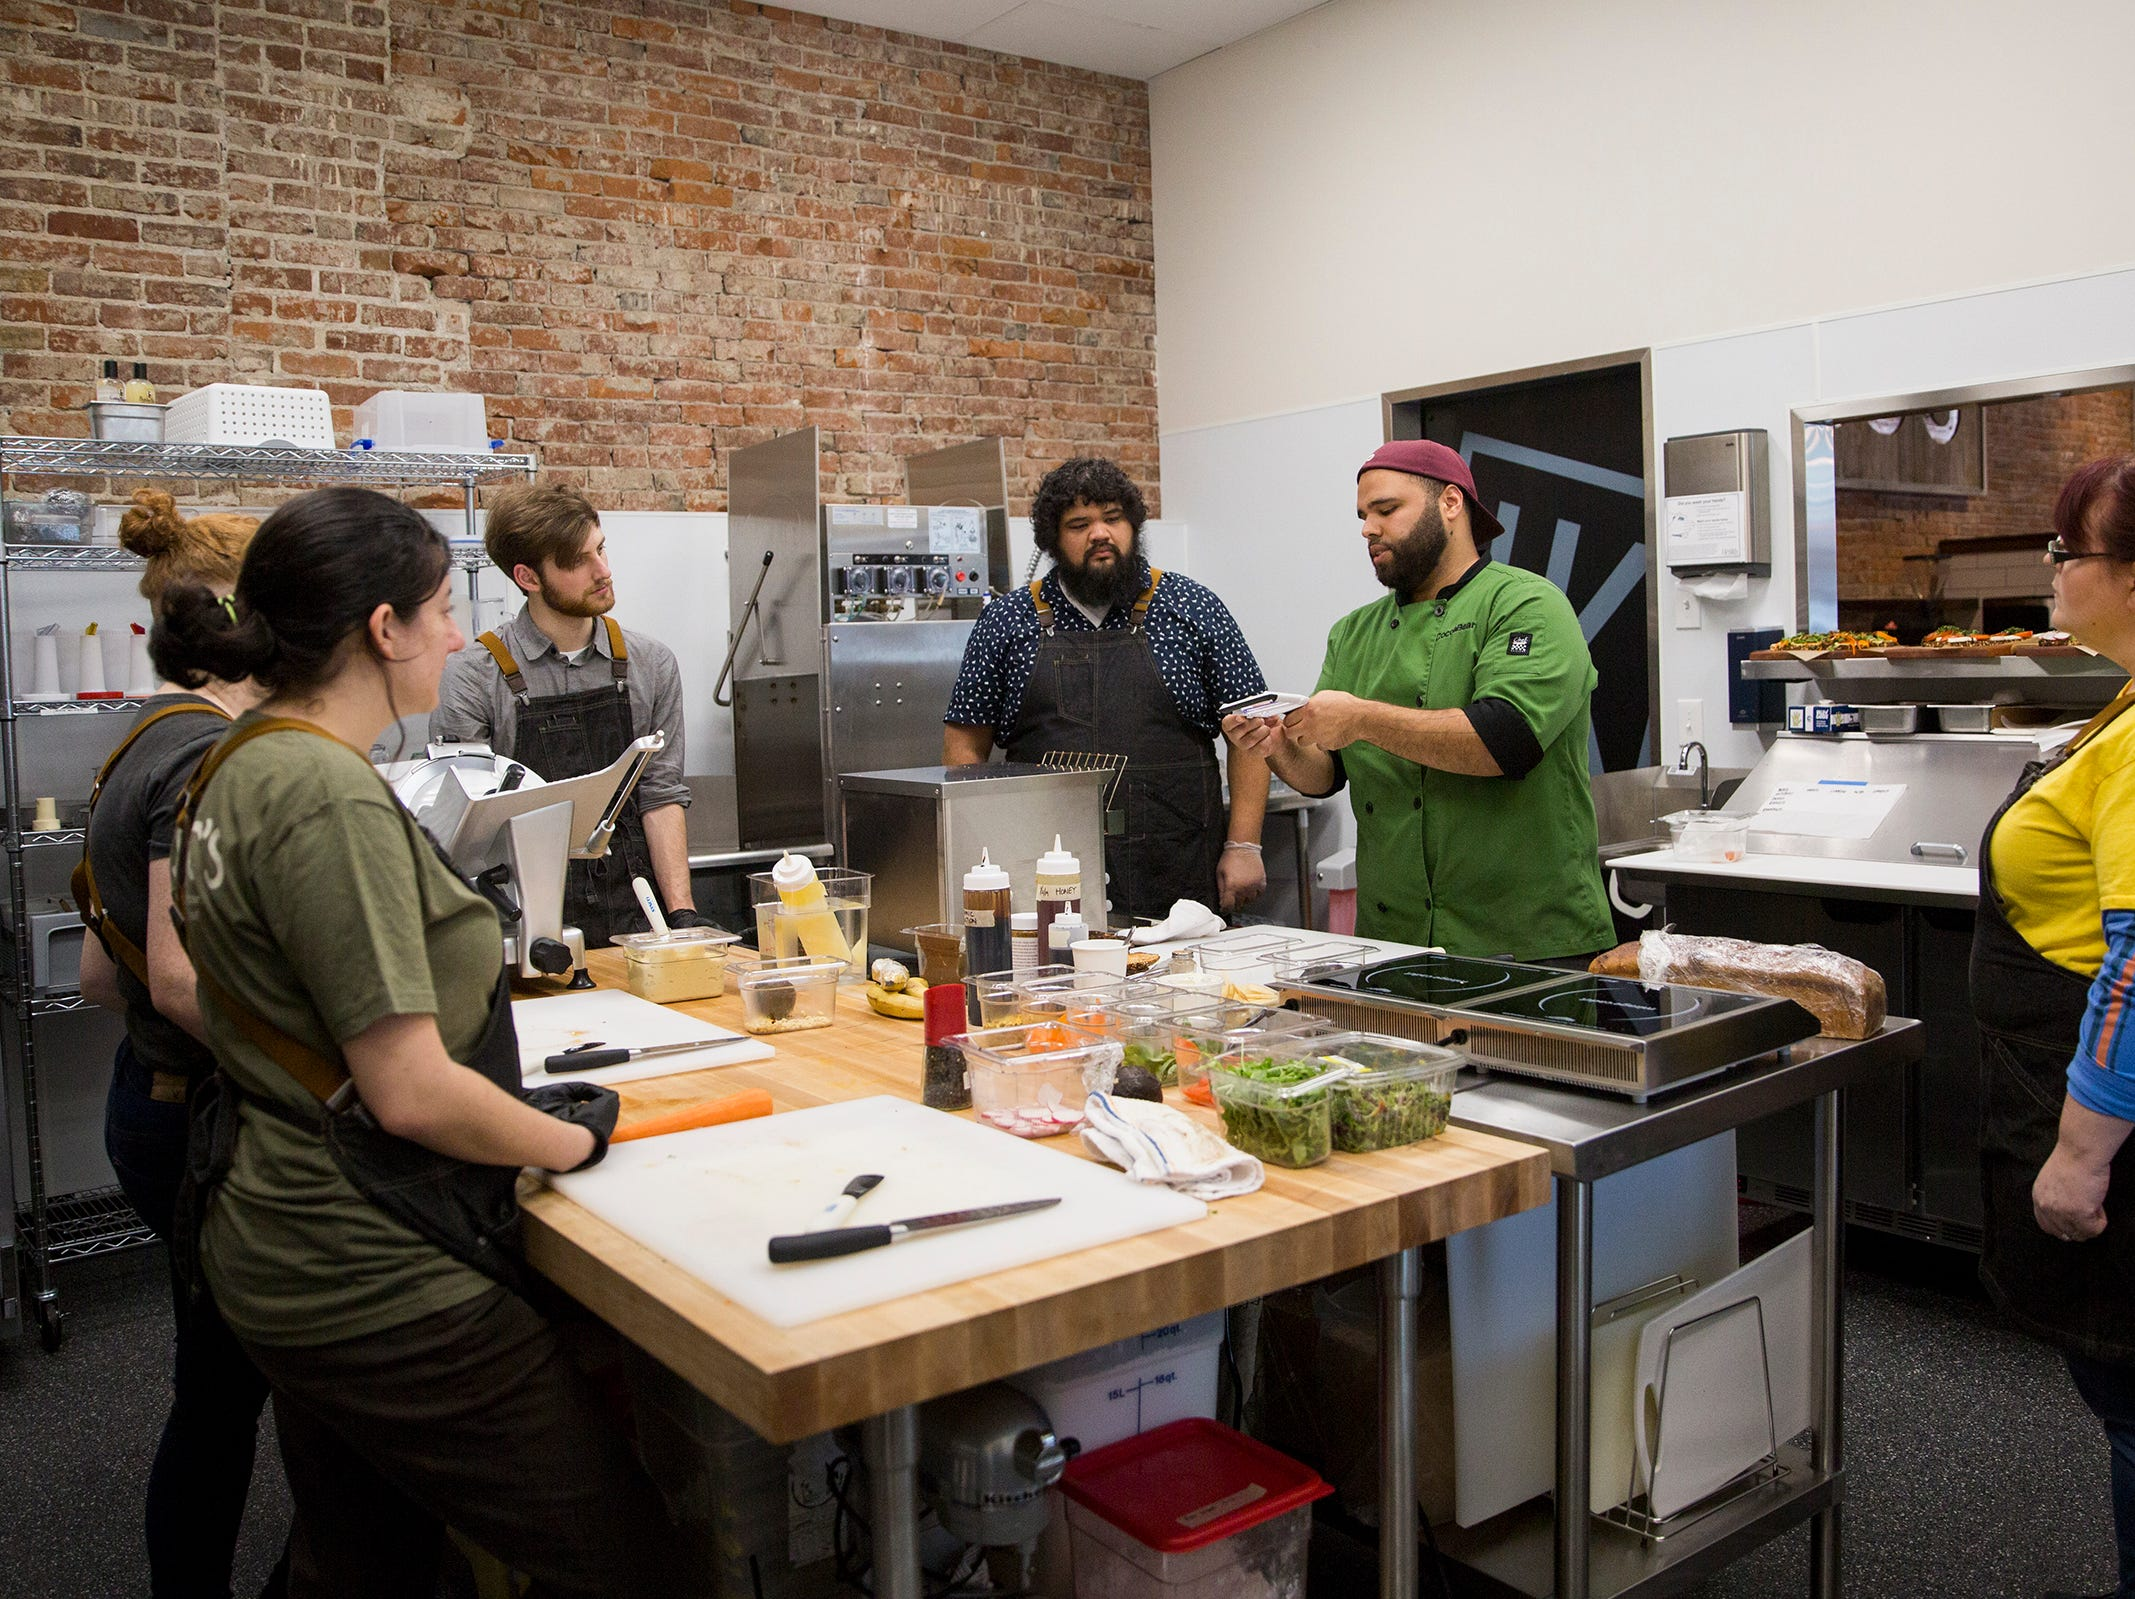 Jonathan Jones (center) shows Isaac's Downtown employees how to make certain toast items on the menu in Salem on Thursday, Jan. 3, 2019. Jones created the menu.